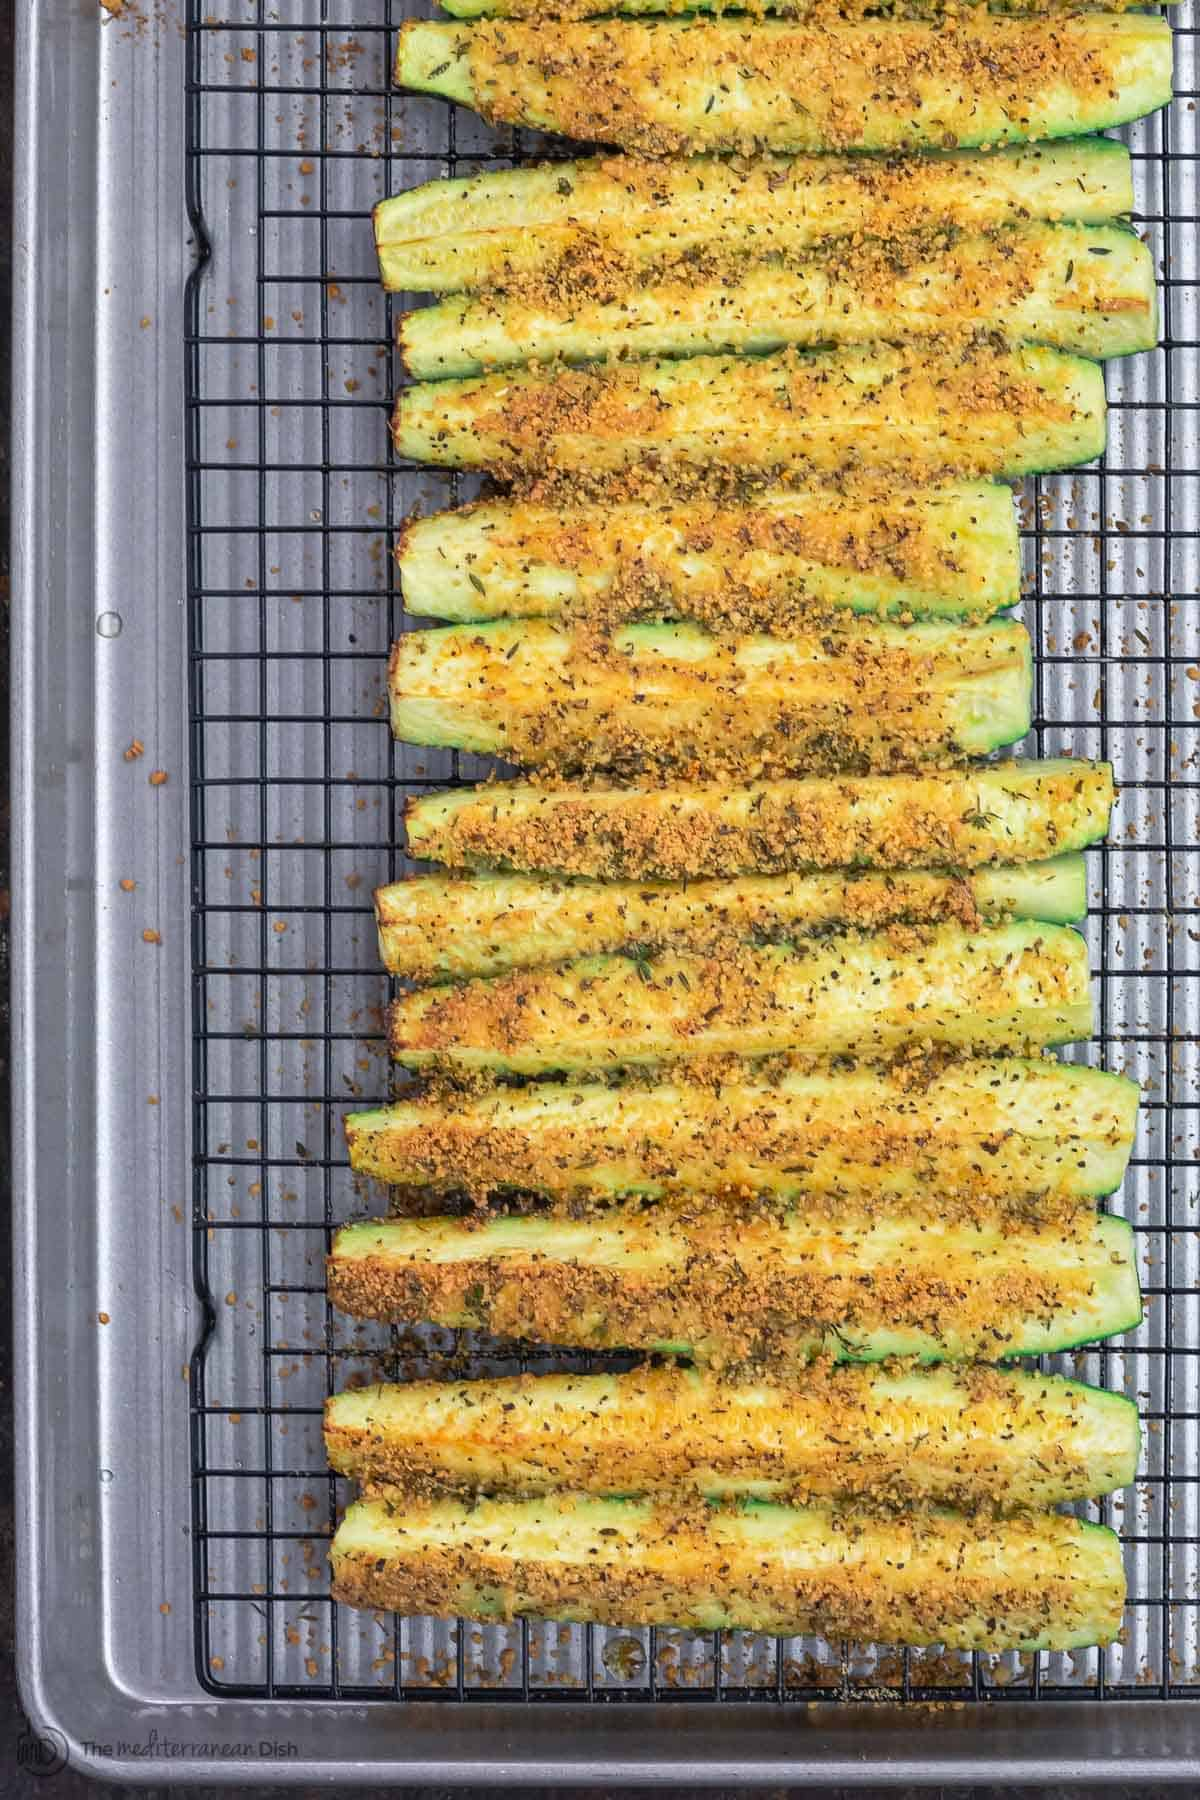 Baked Zucchini Sticks on Wire Rack